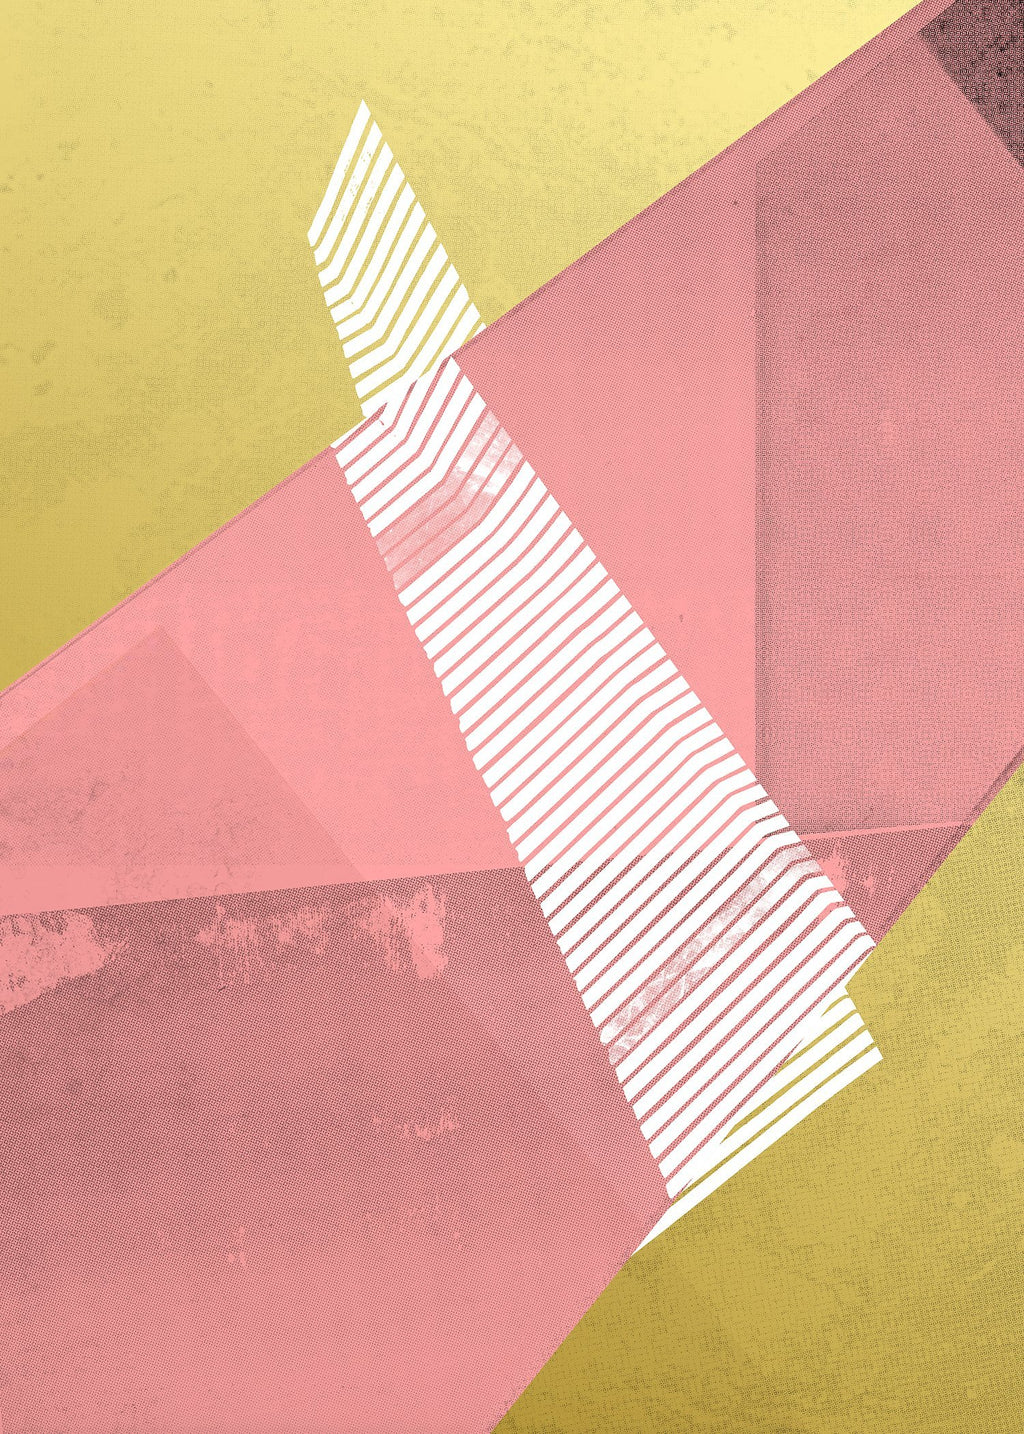 Abstract Angles 2 - Pink